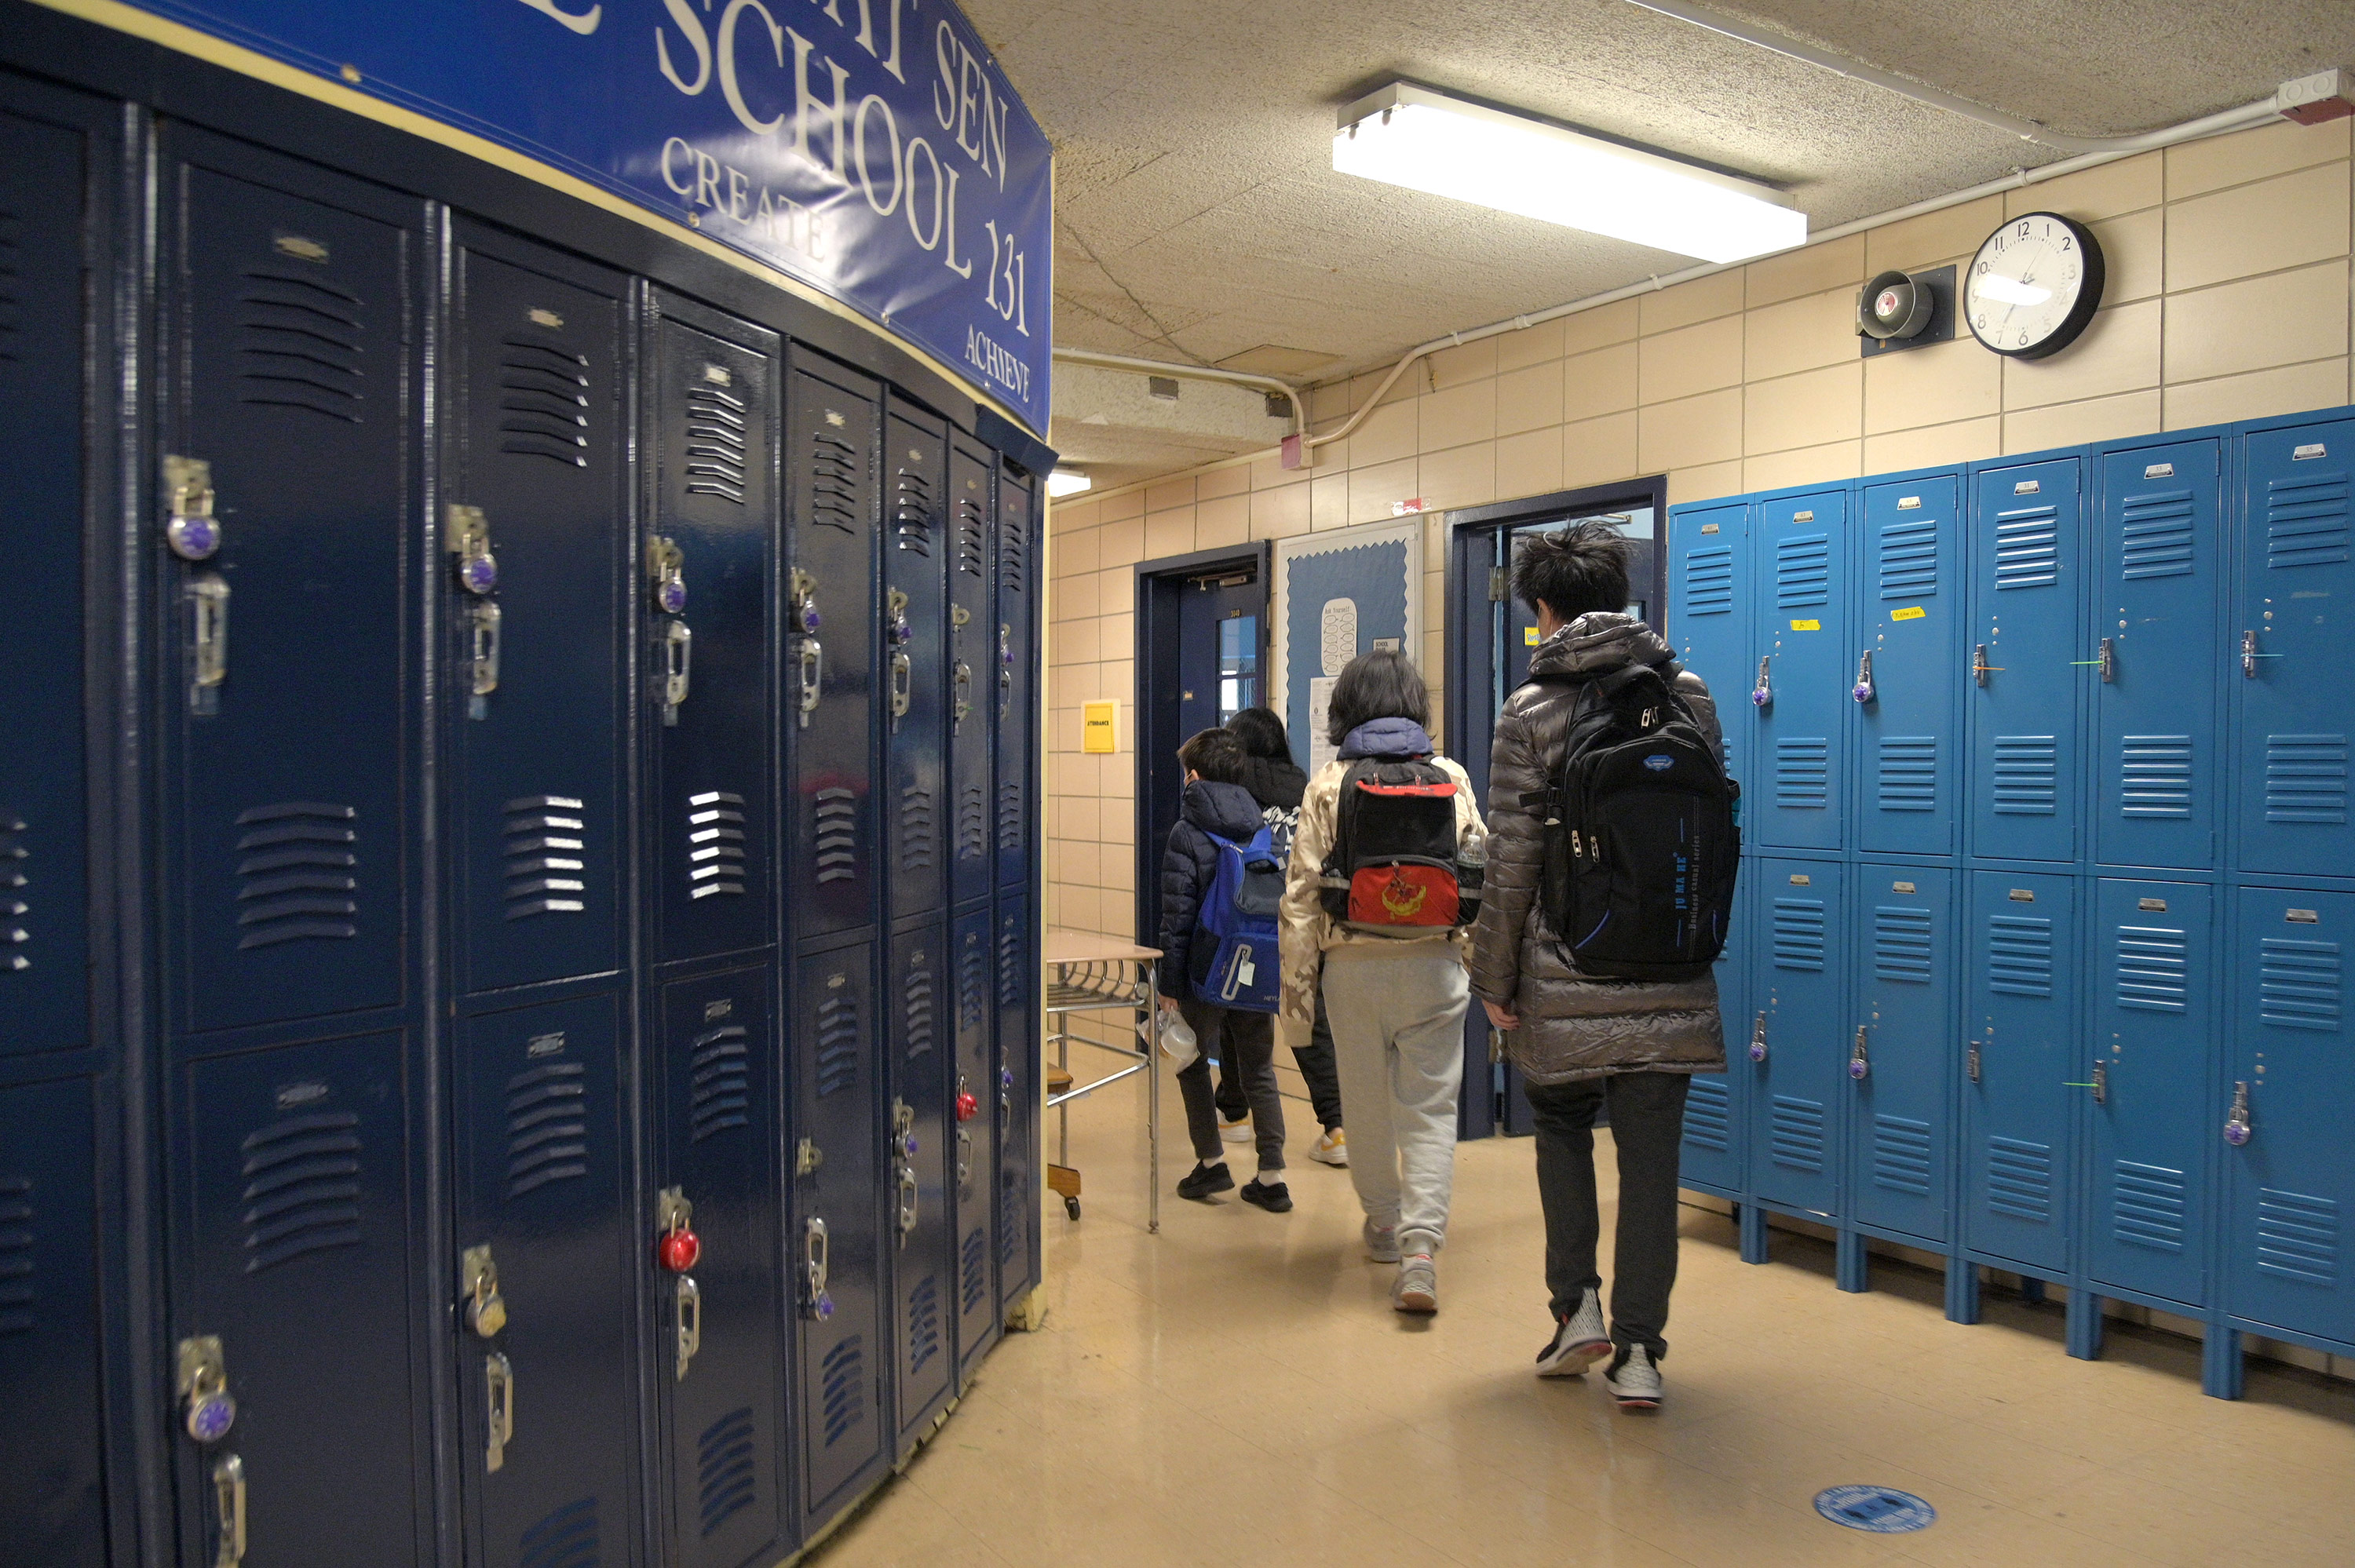 Students walk to class at Sun Yat Sen Middle School in New York City, on February 25.